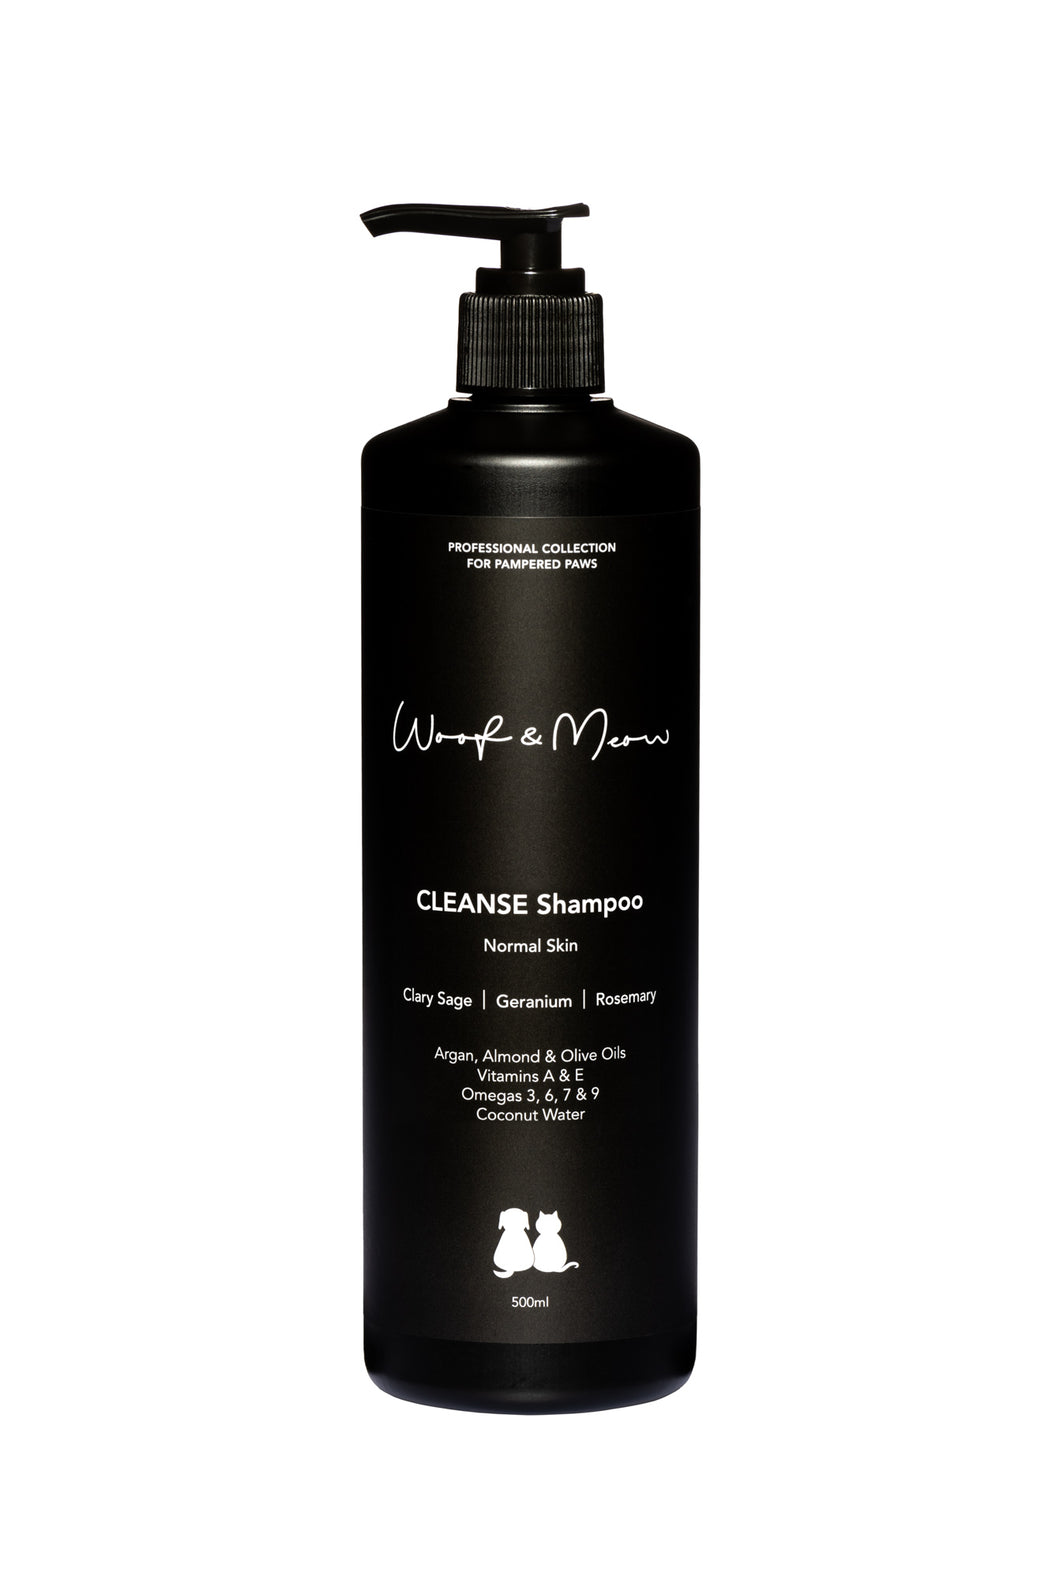 Cleanse Shampoo (Clary Sage, Geranium, Rosemary) - for NORMAL SKIN 500ML